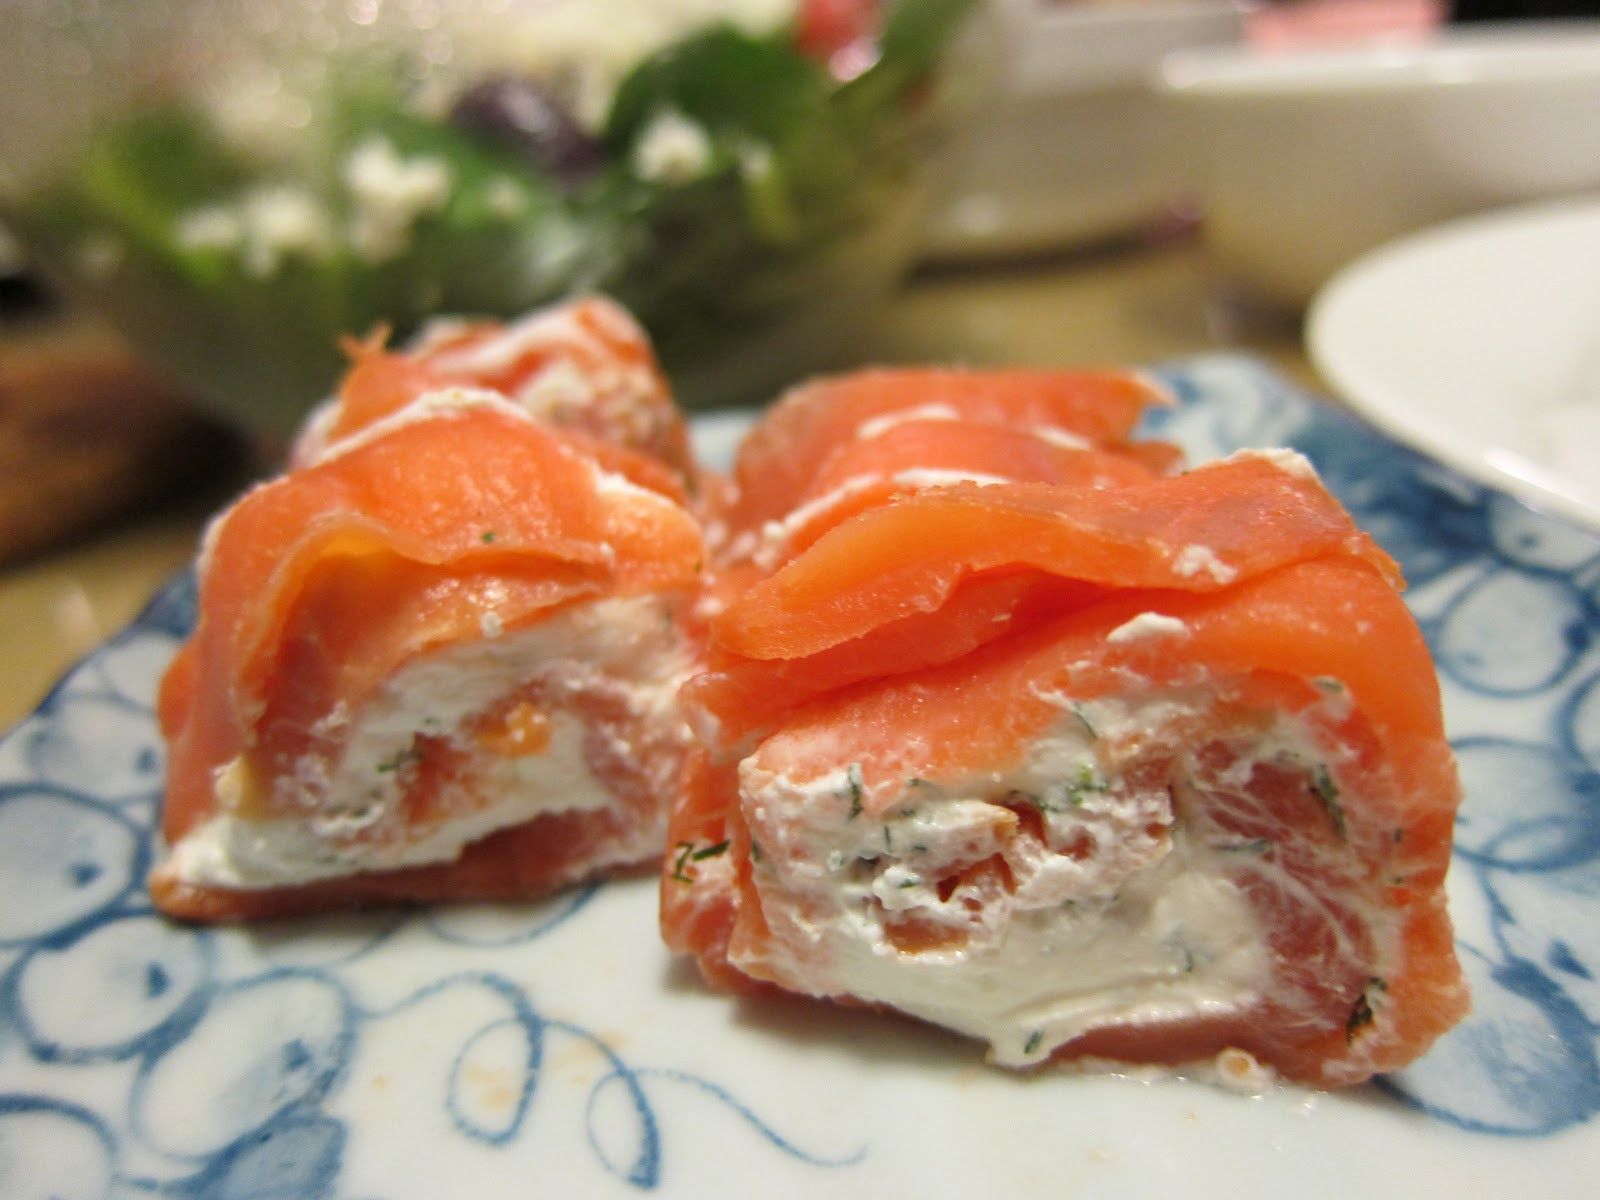 Smoked Salmon Cream Cheese  Dining for Two Smoked Salmon and Cream Cheese Appetizer